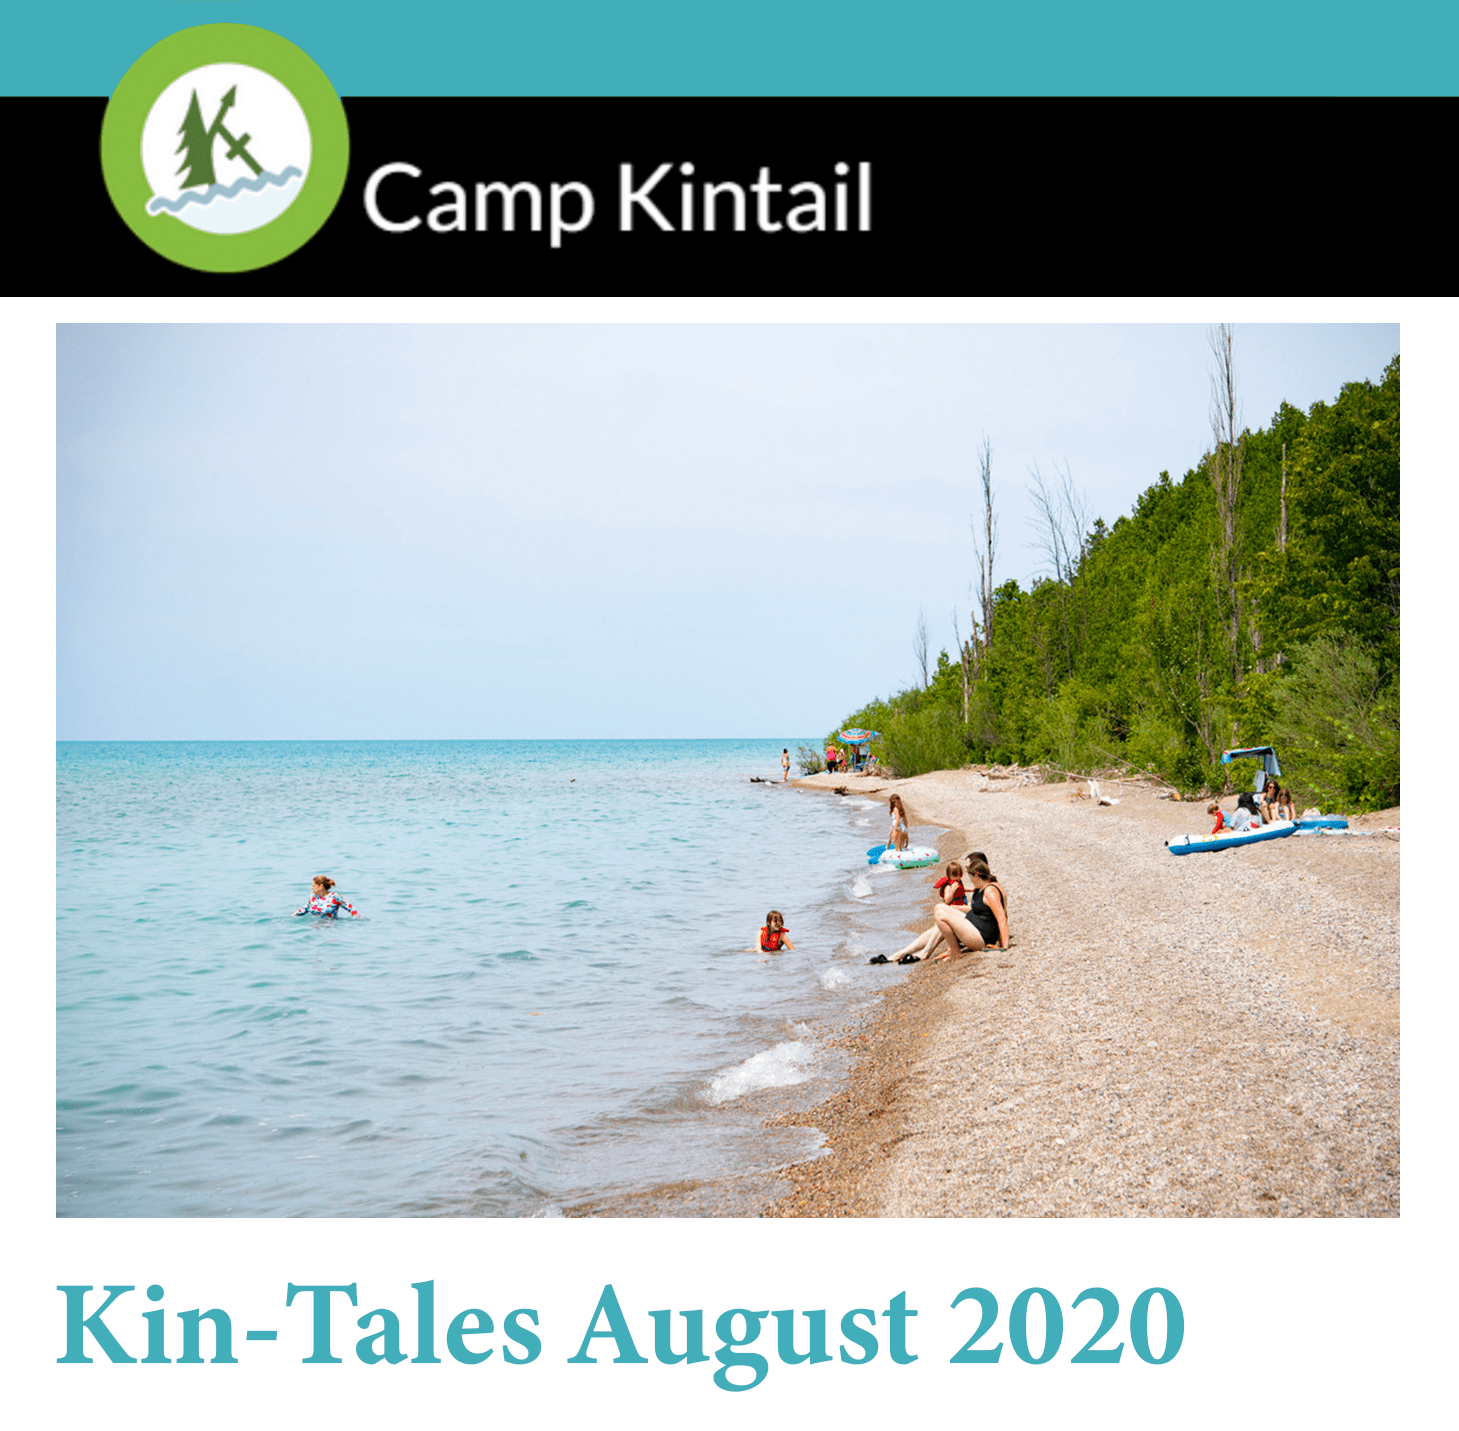 Title text: Kin-Tales August 2020. Image: Sunny beach day on Lake Huron.